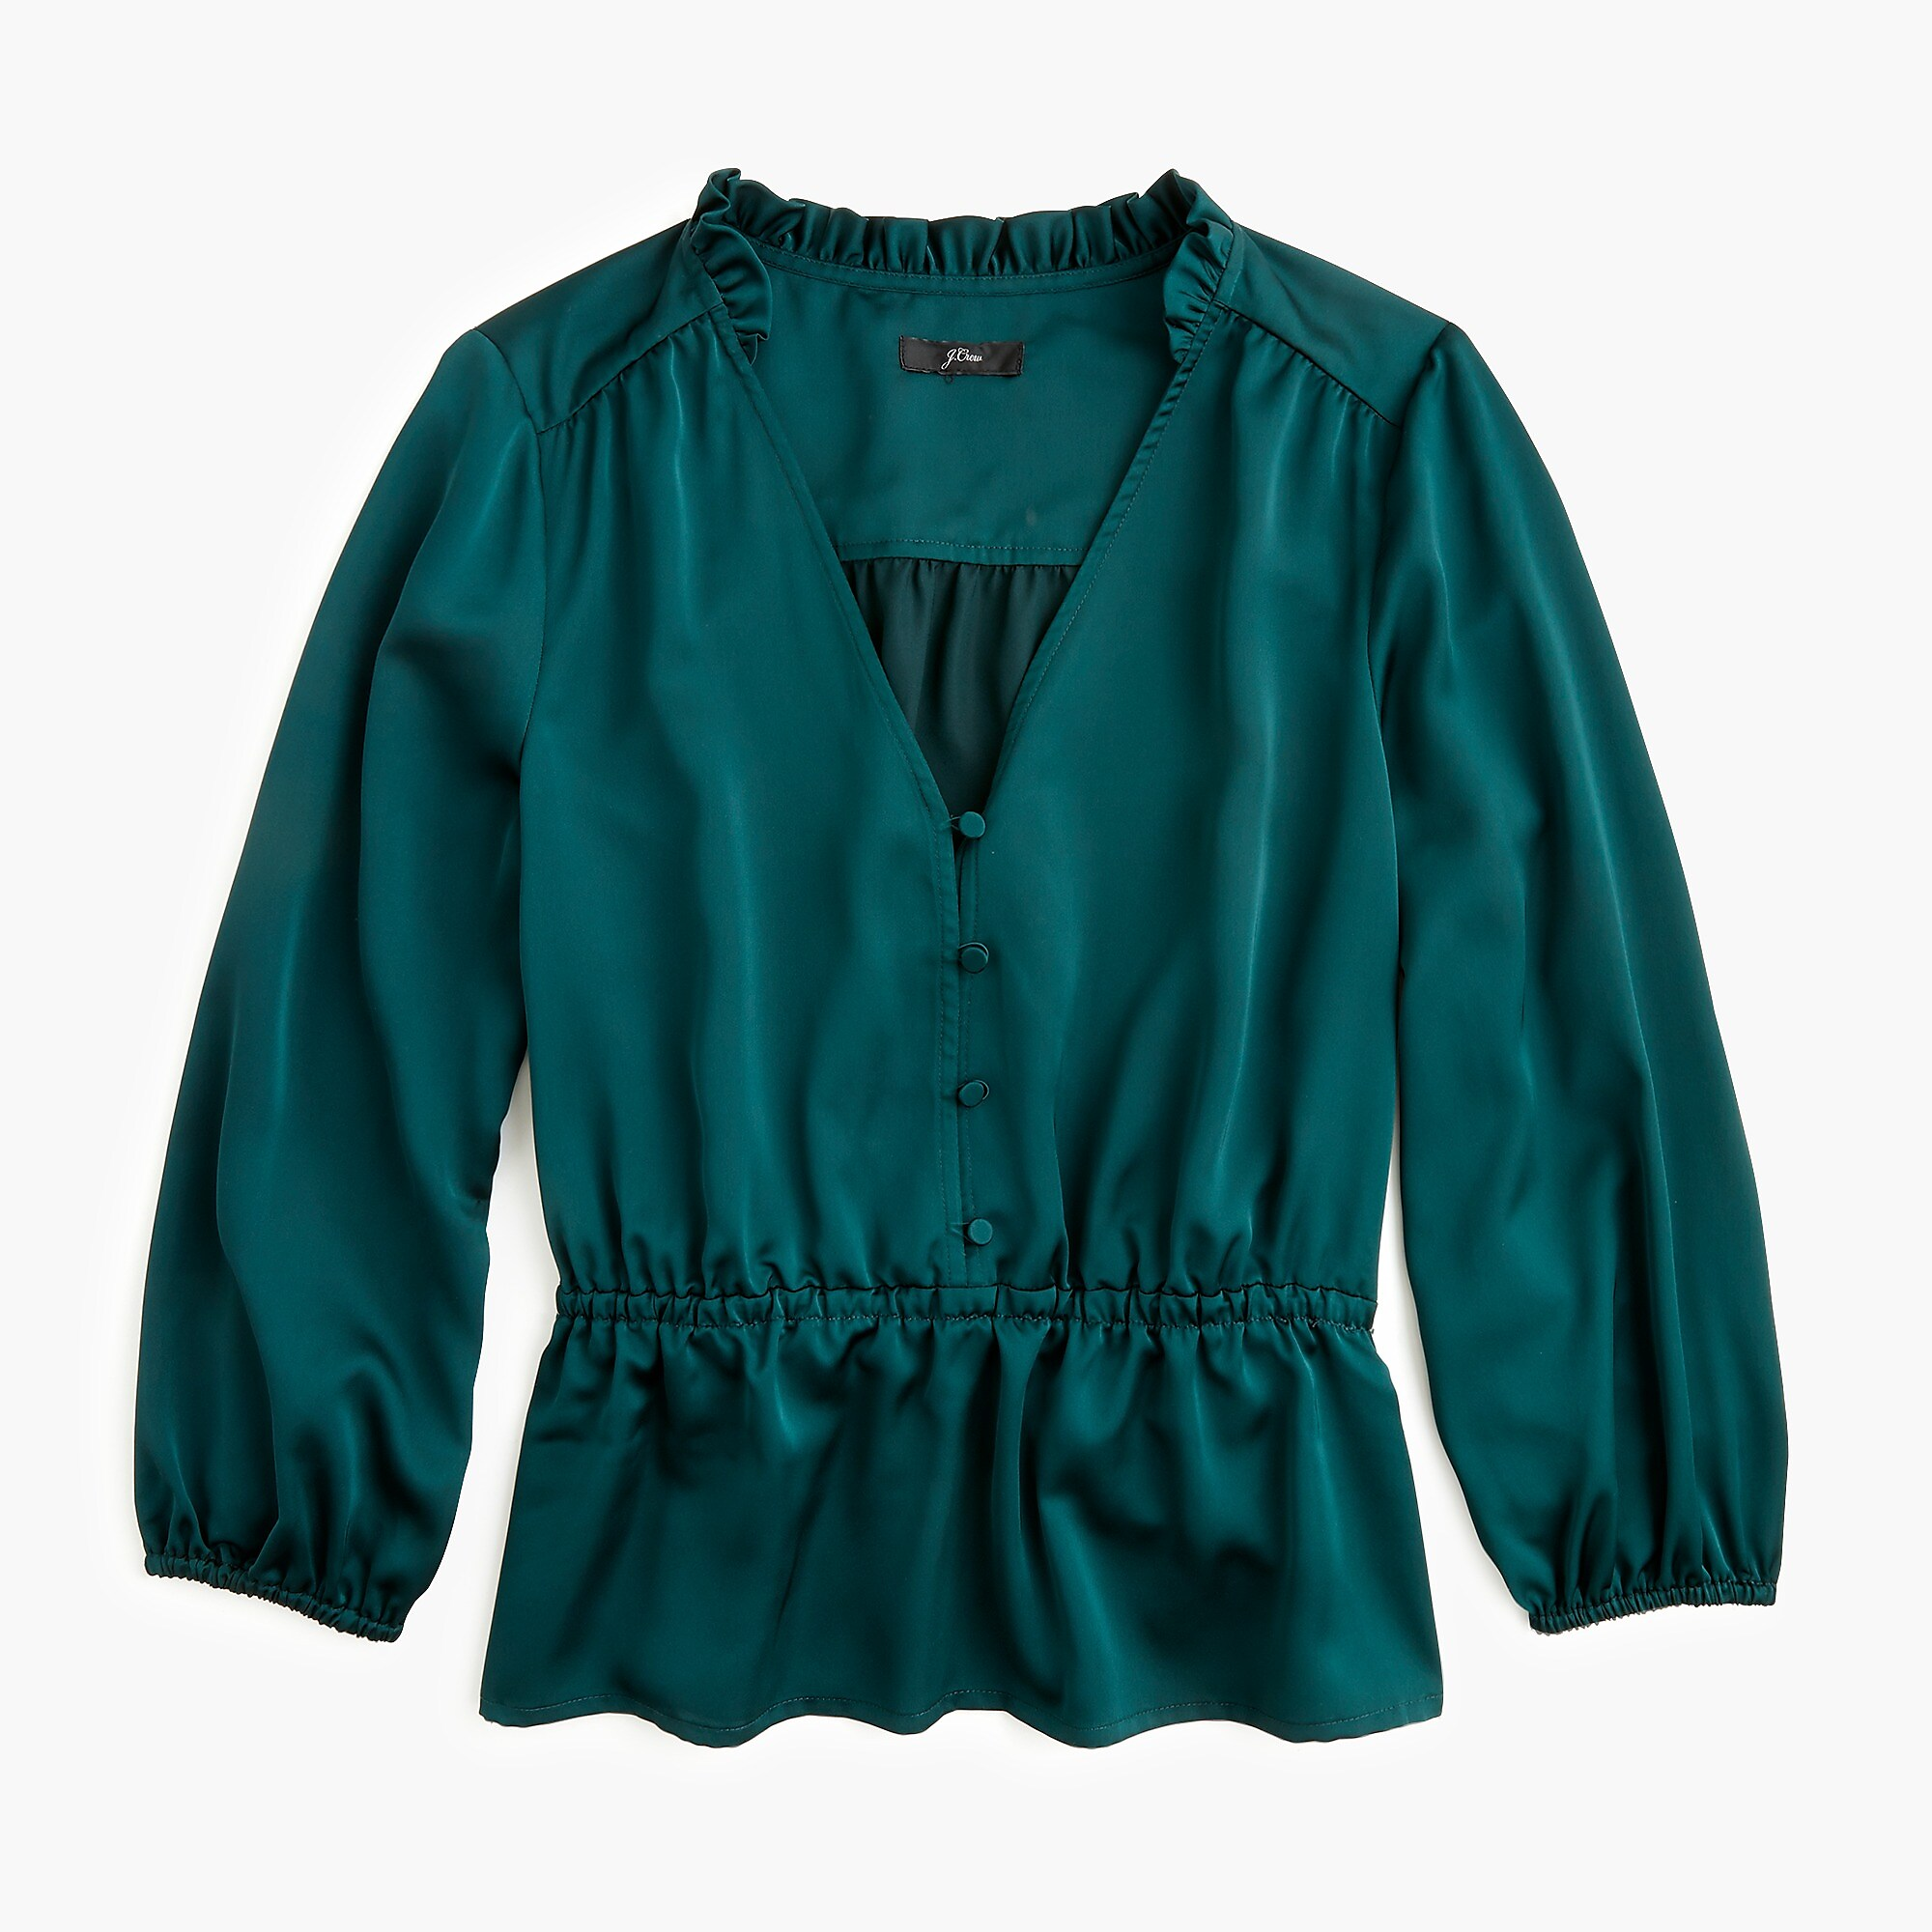 Green Peplum V-Neck Blouse